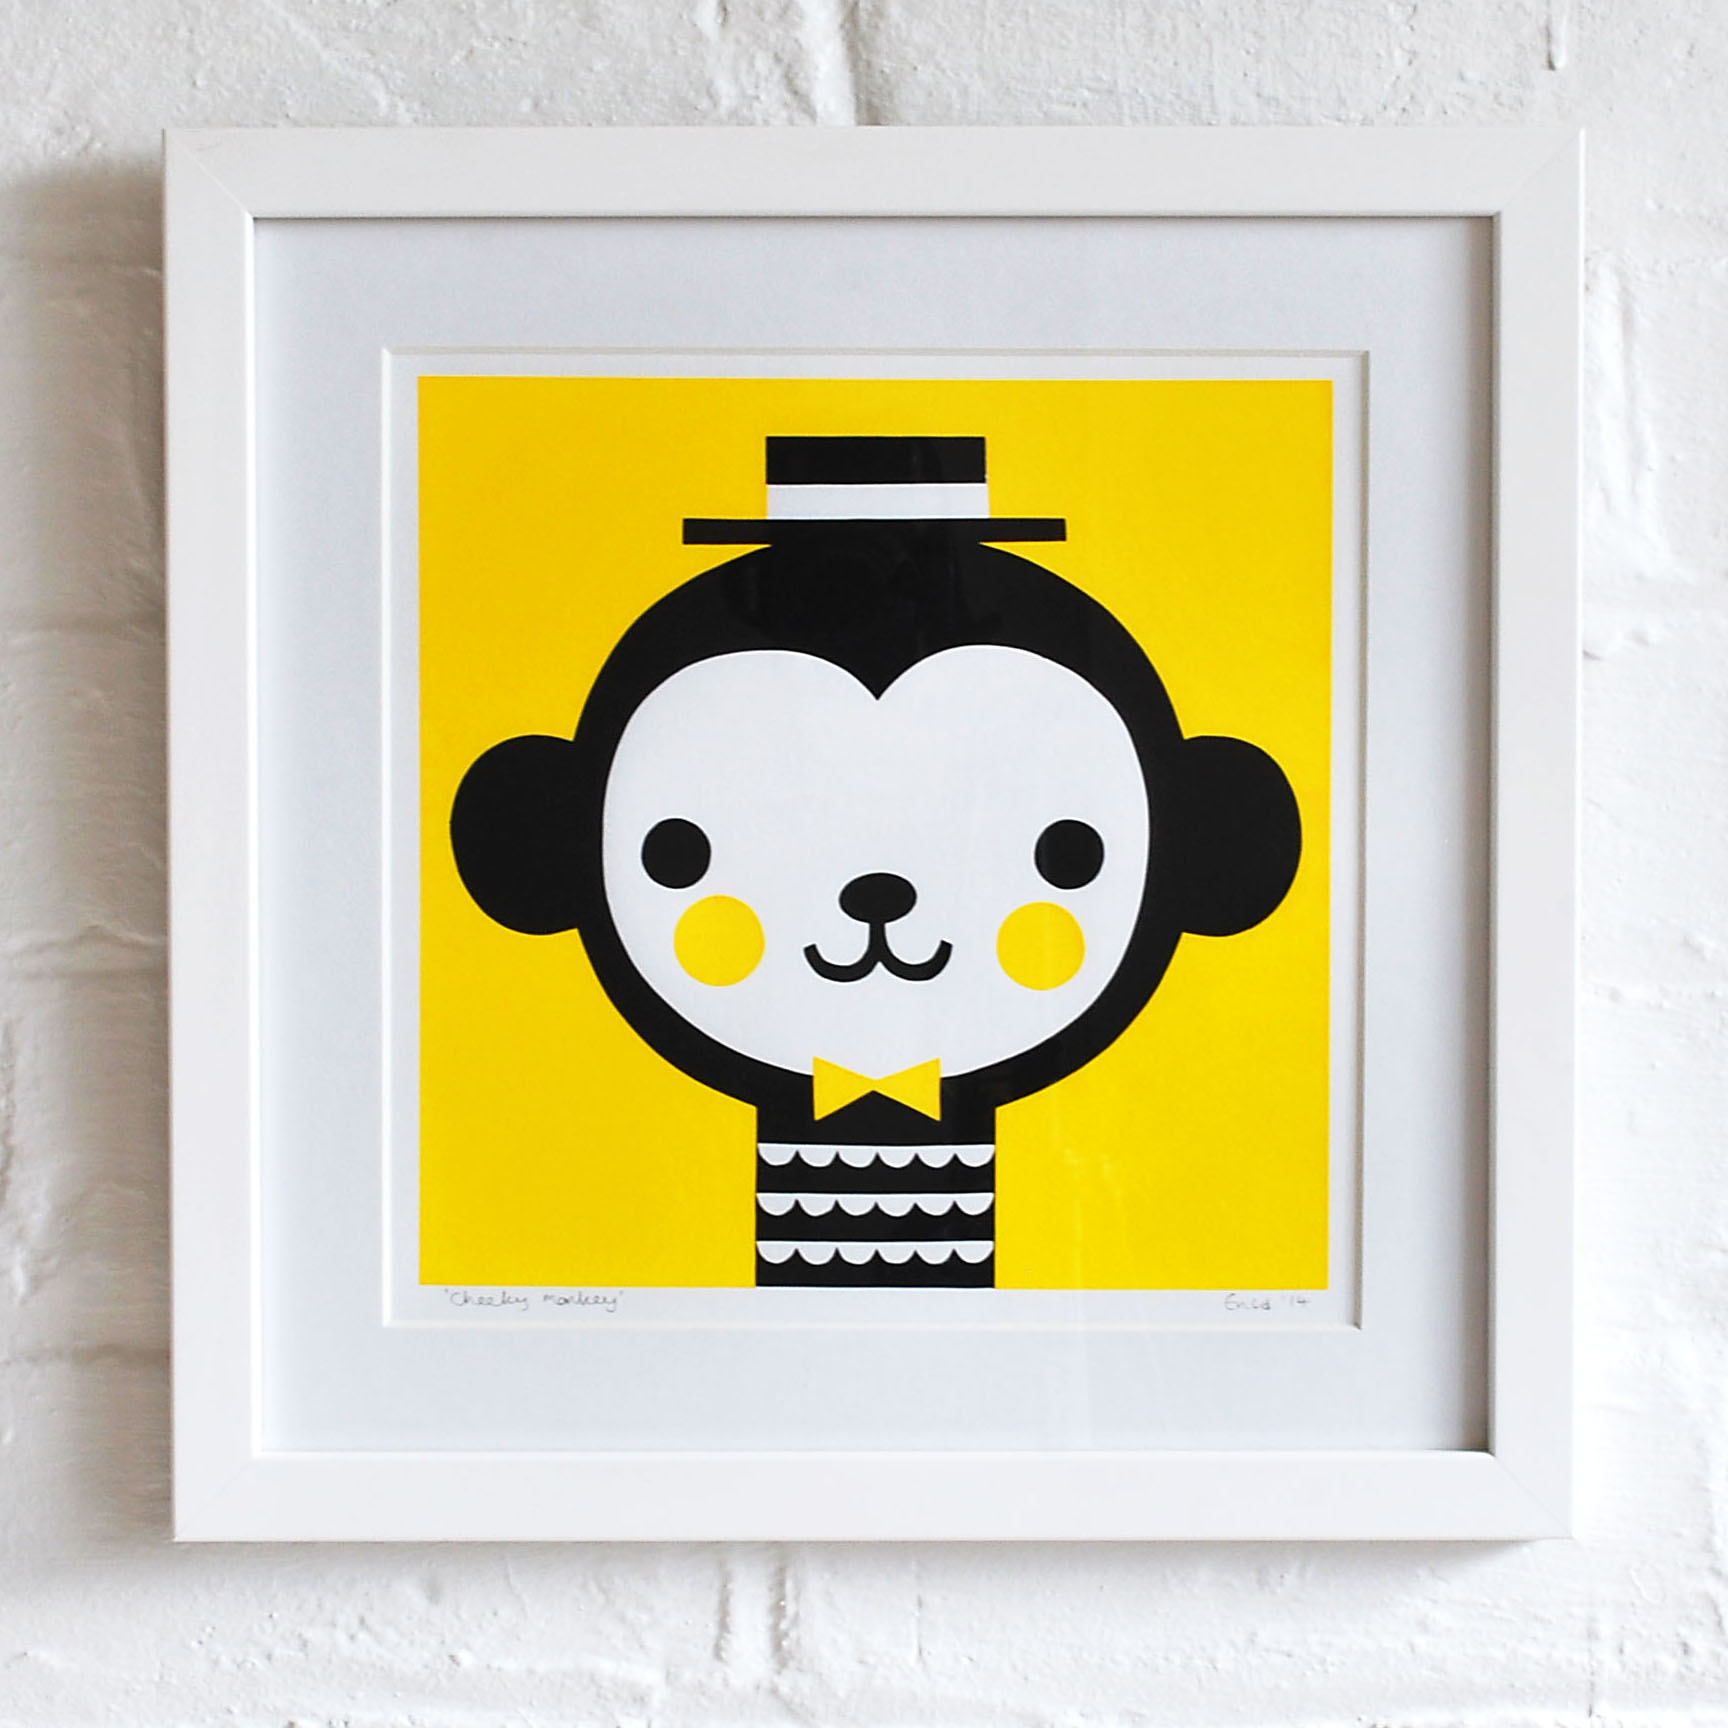 framed monkey.jpg